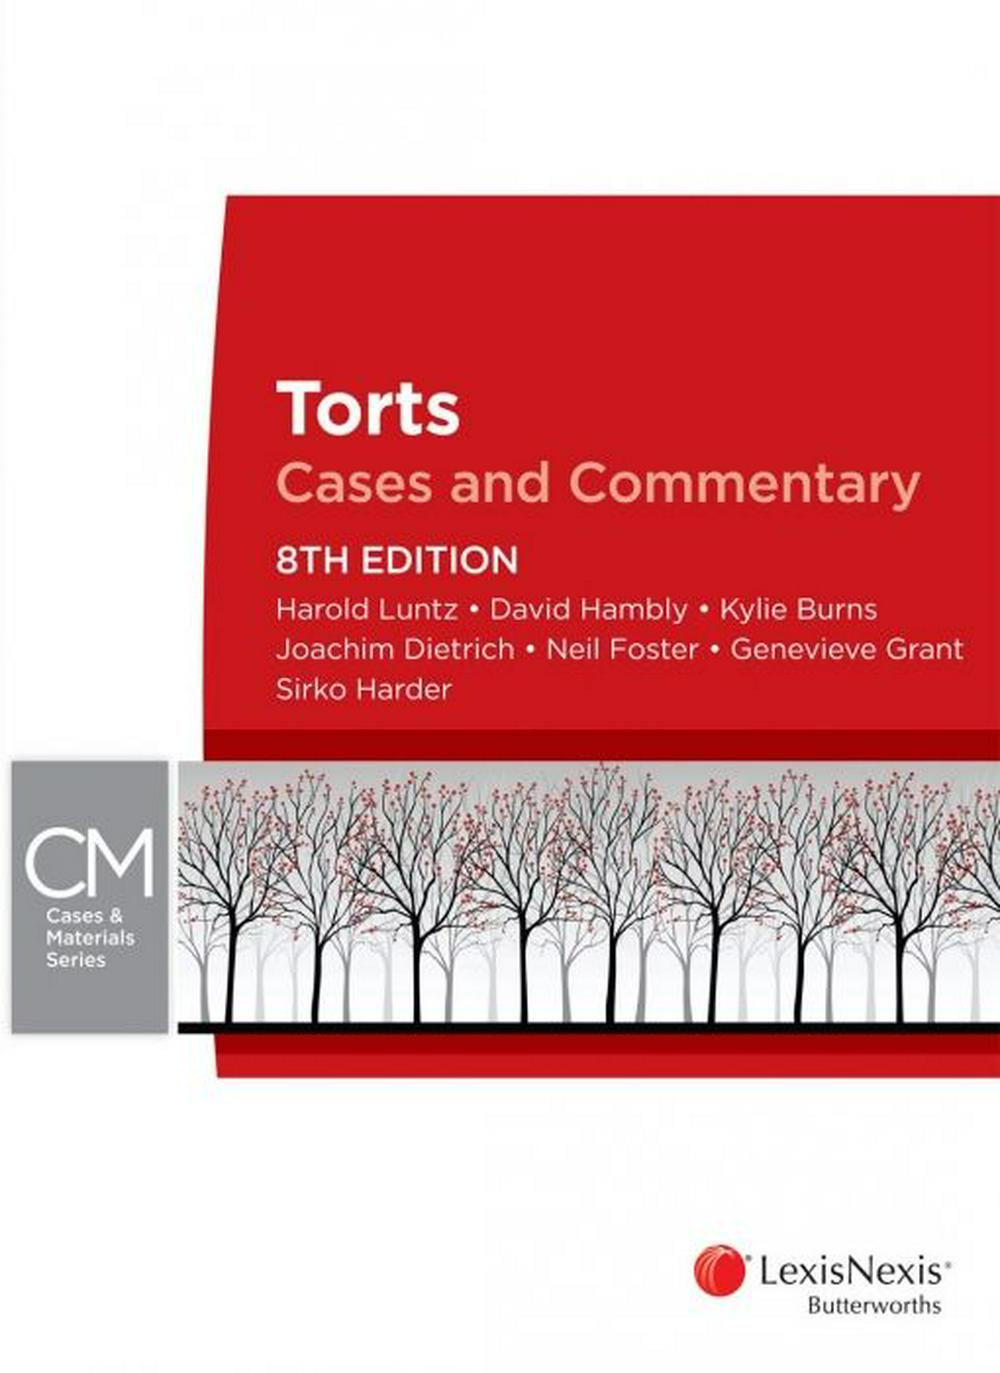 Torts by H Luntz,D Hambly,K Burns,J Dietrich,N Foster, ISBN: 9780409342093